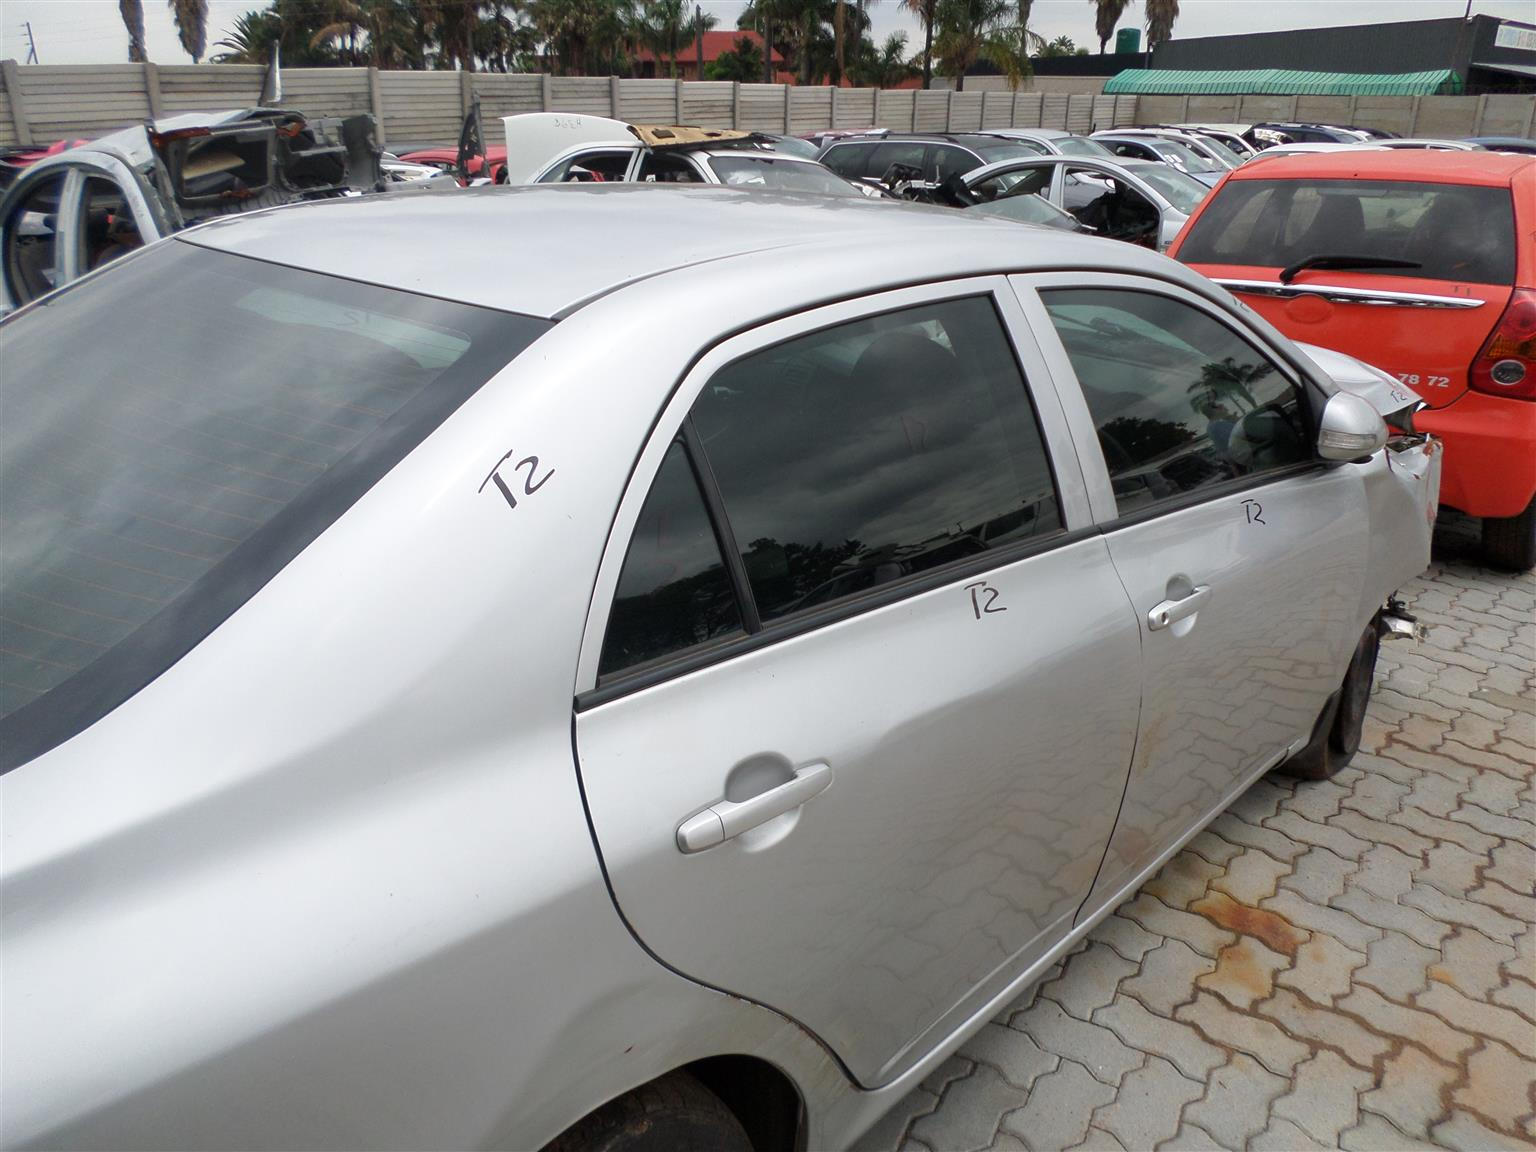 Toyota Corolla 1.3 Professional 2012 now for stripping of all parts.